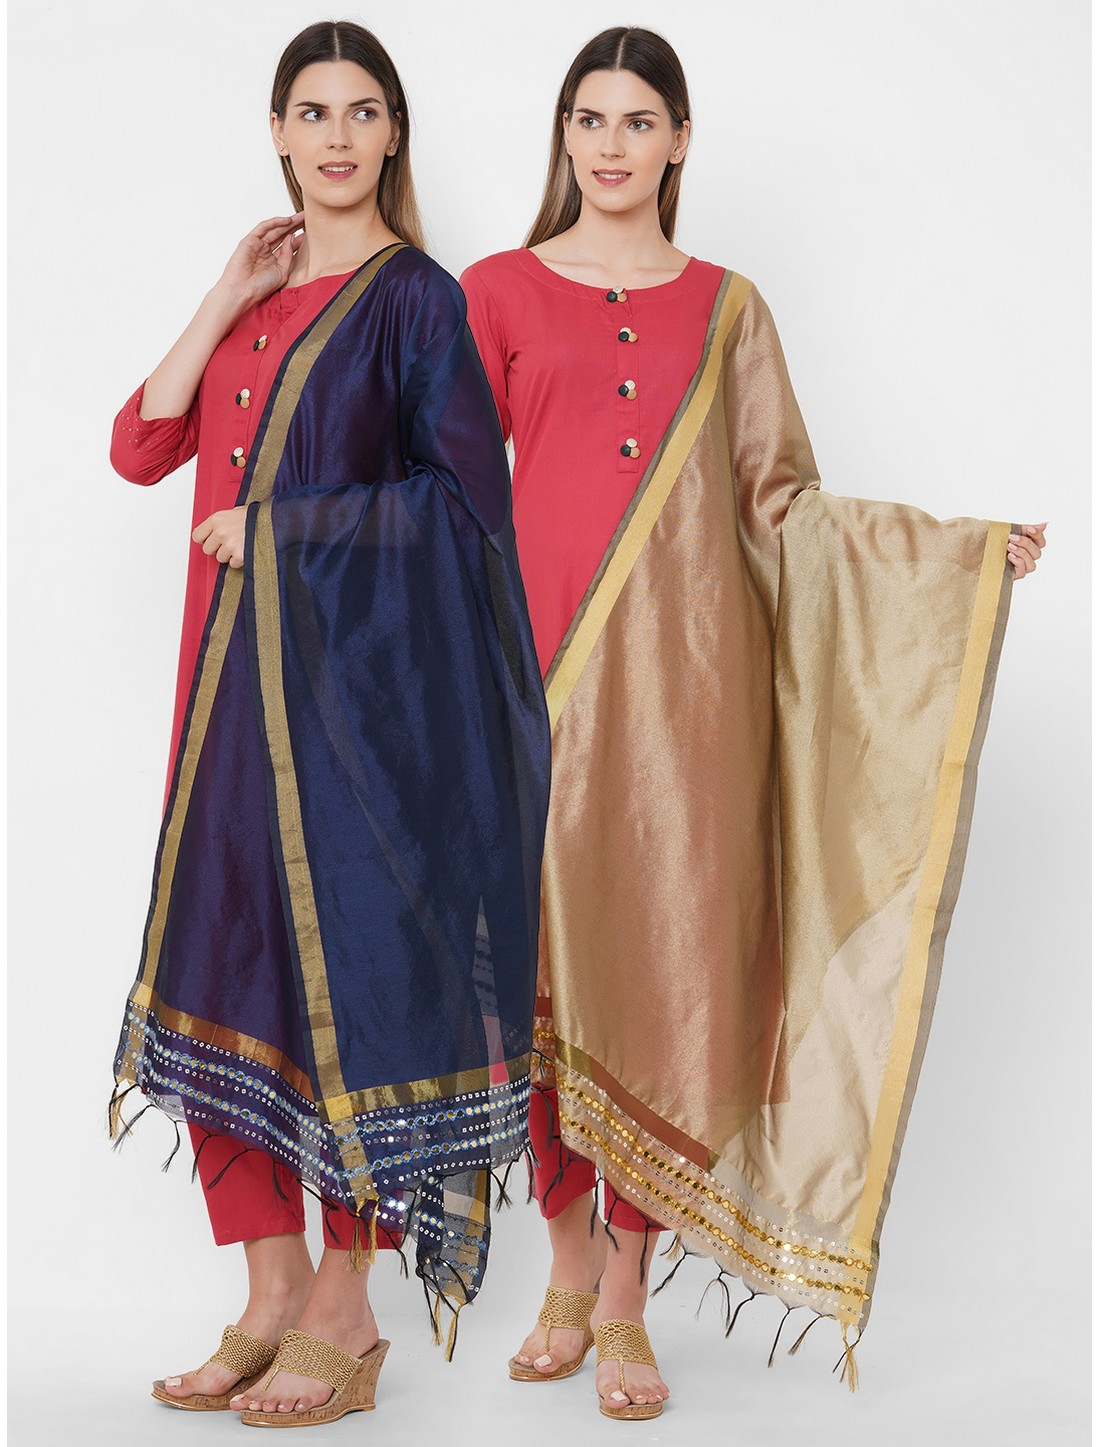 Get Wrapped | Get Wrapped Polyester Gold Border Multicolor Dupatta with Embroidery - Combo Pack of 2